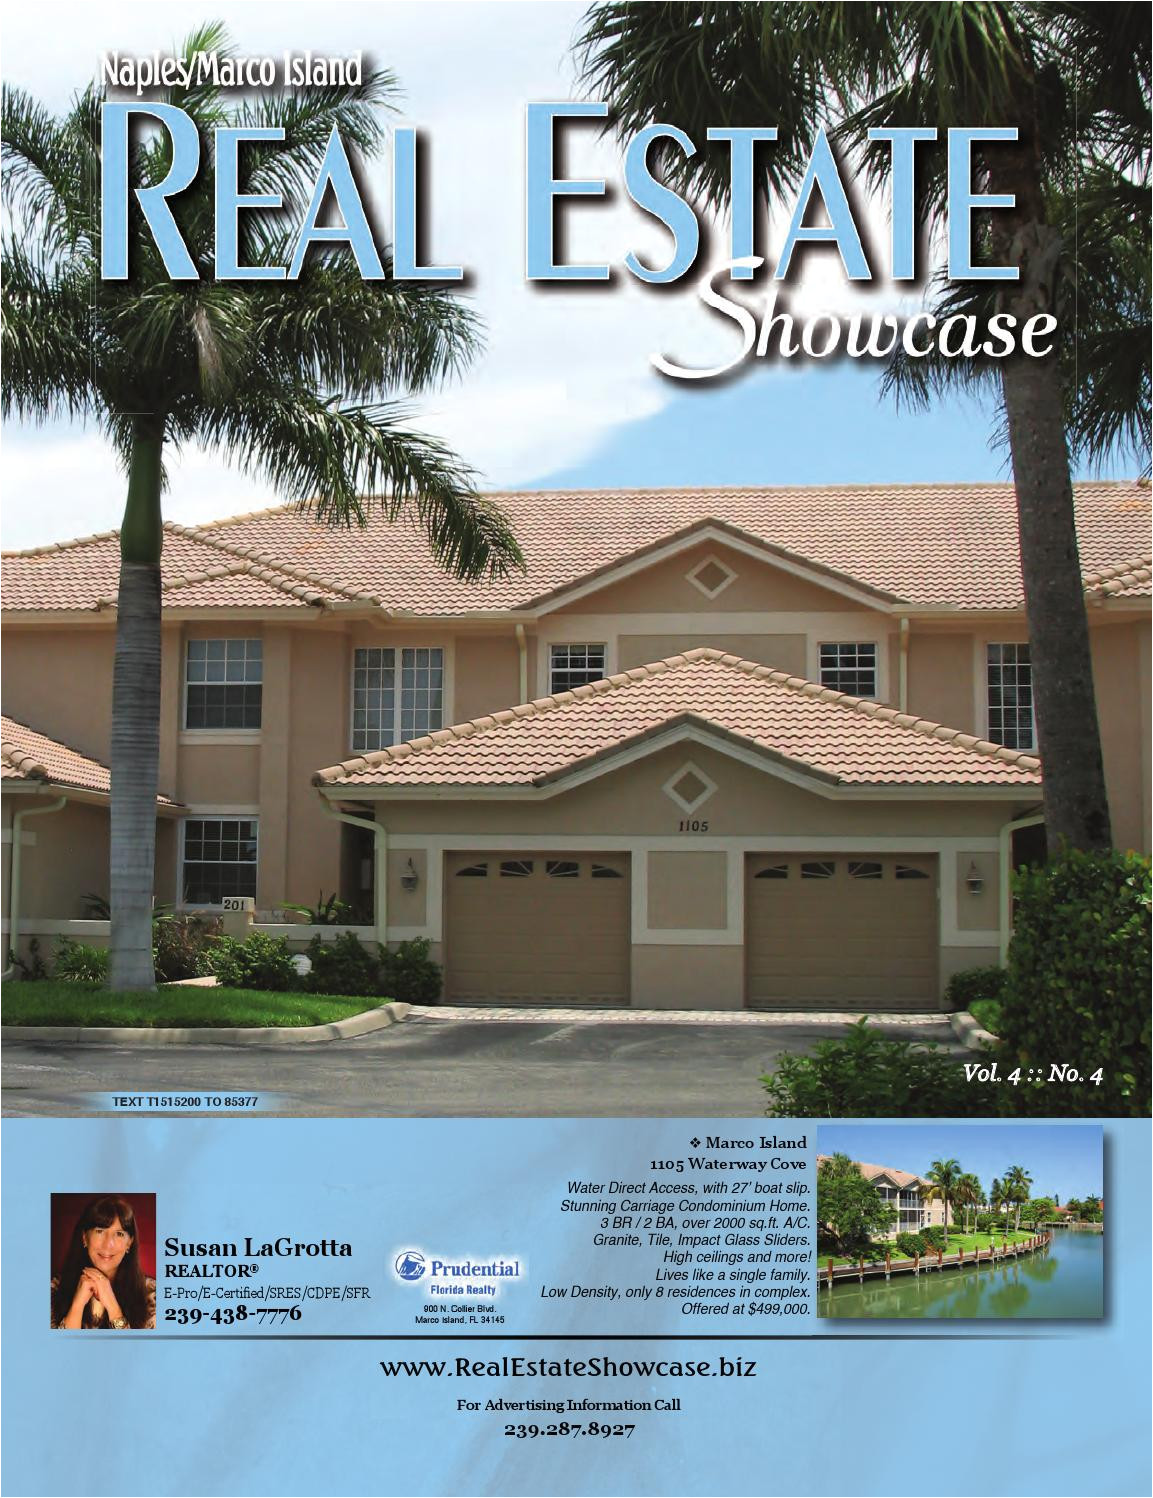 naples marco island real estate showcase 4 4 by real estate showcase inc issuu